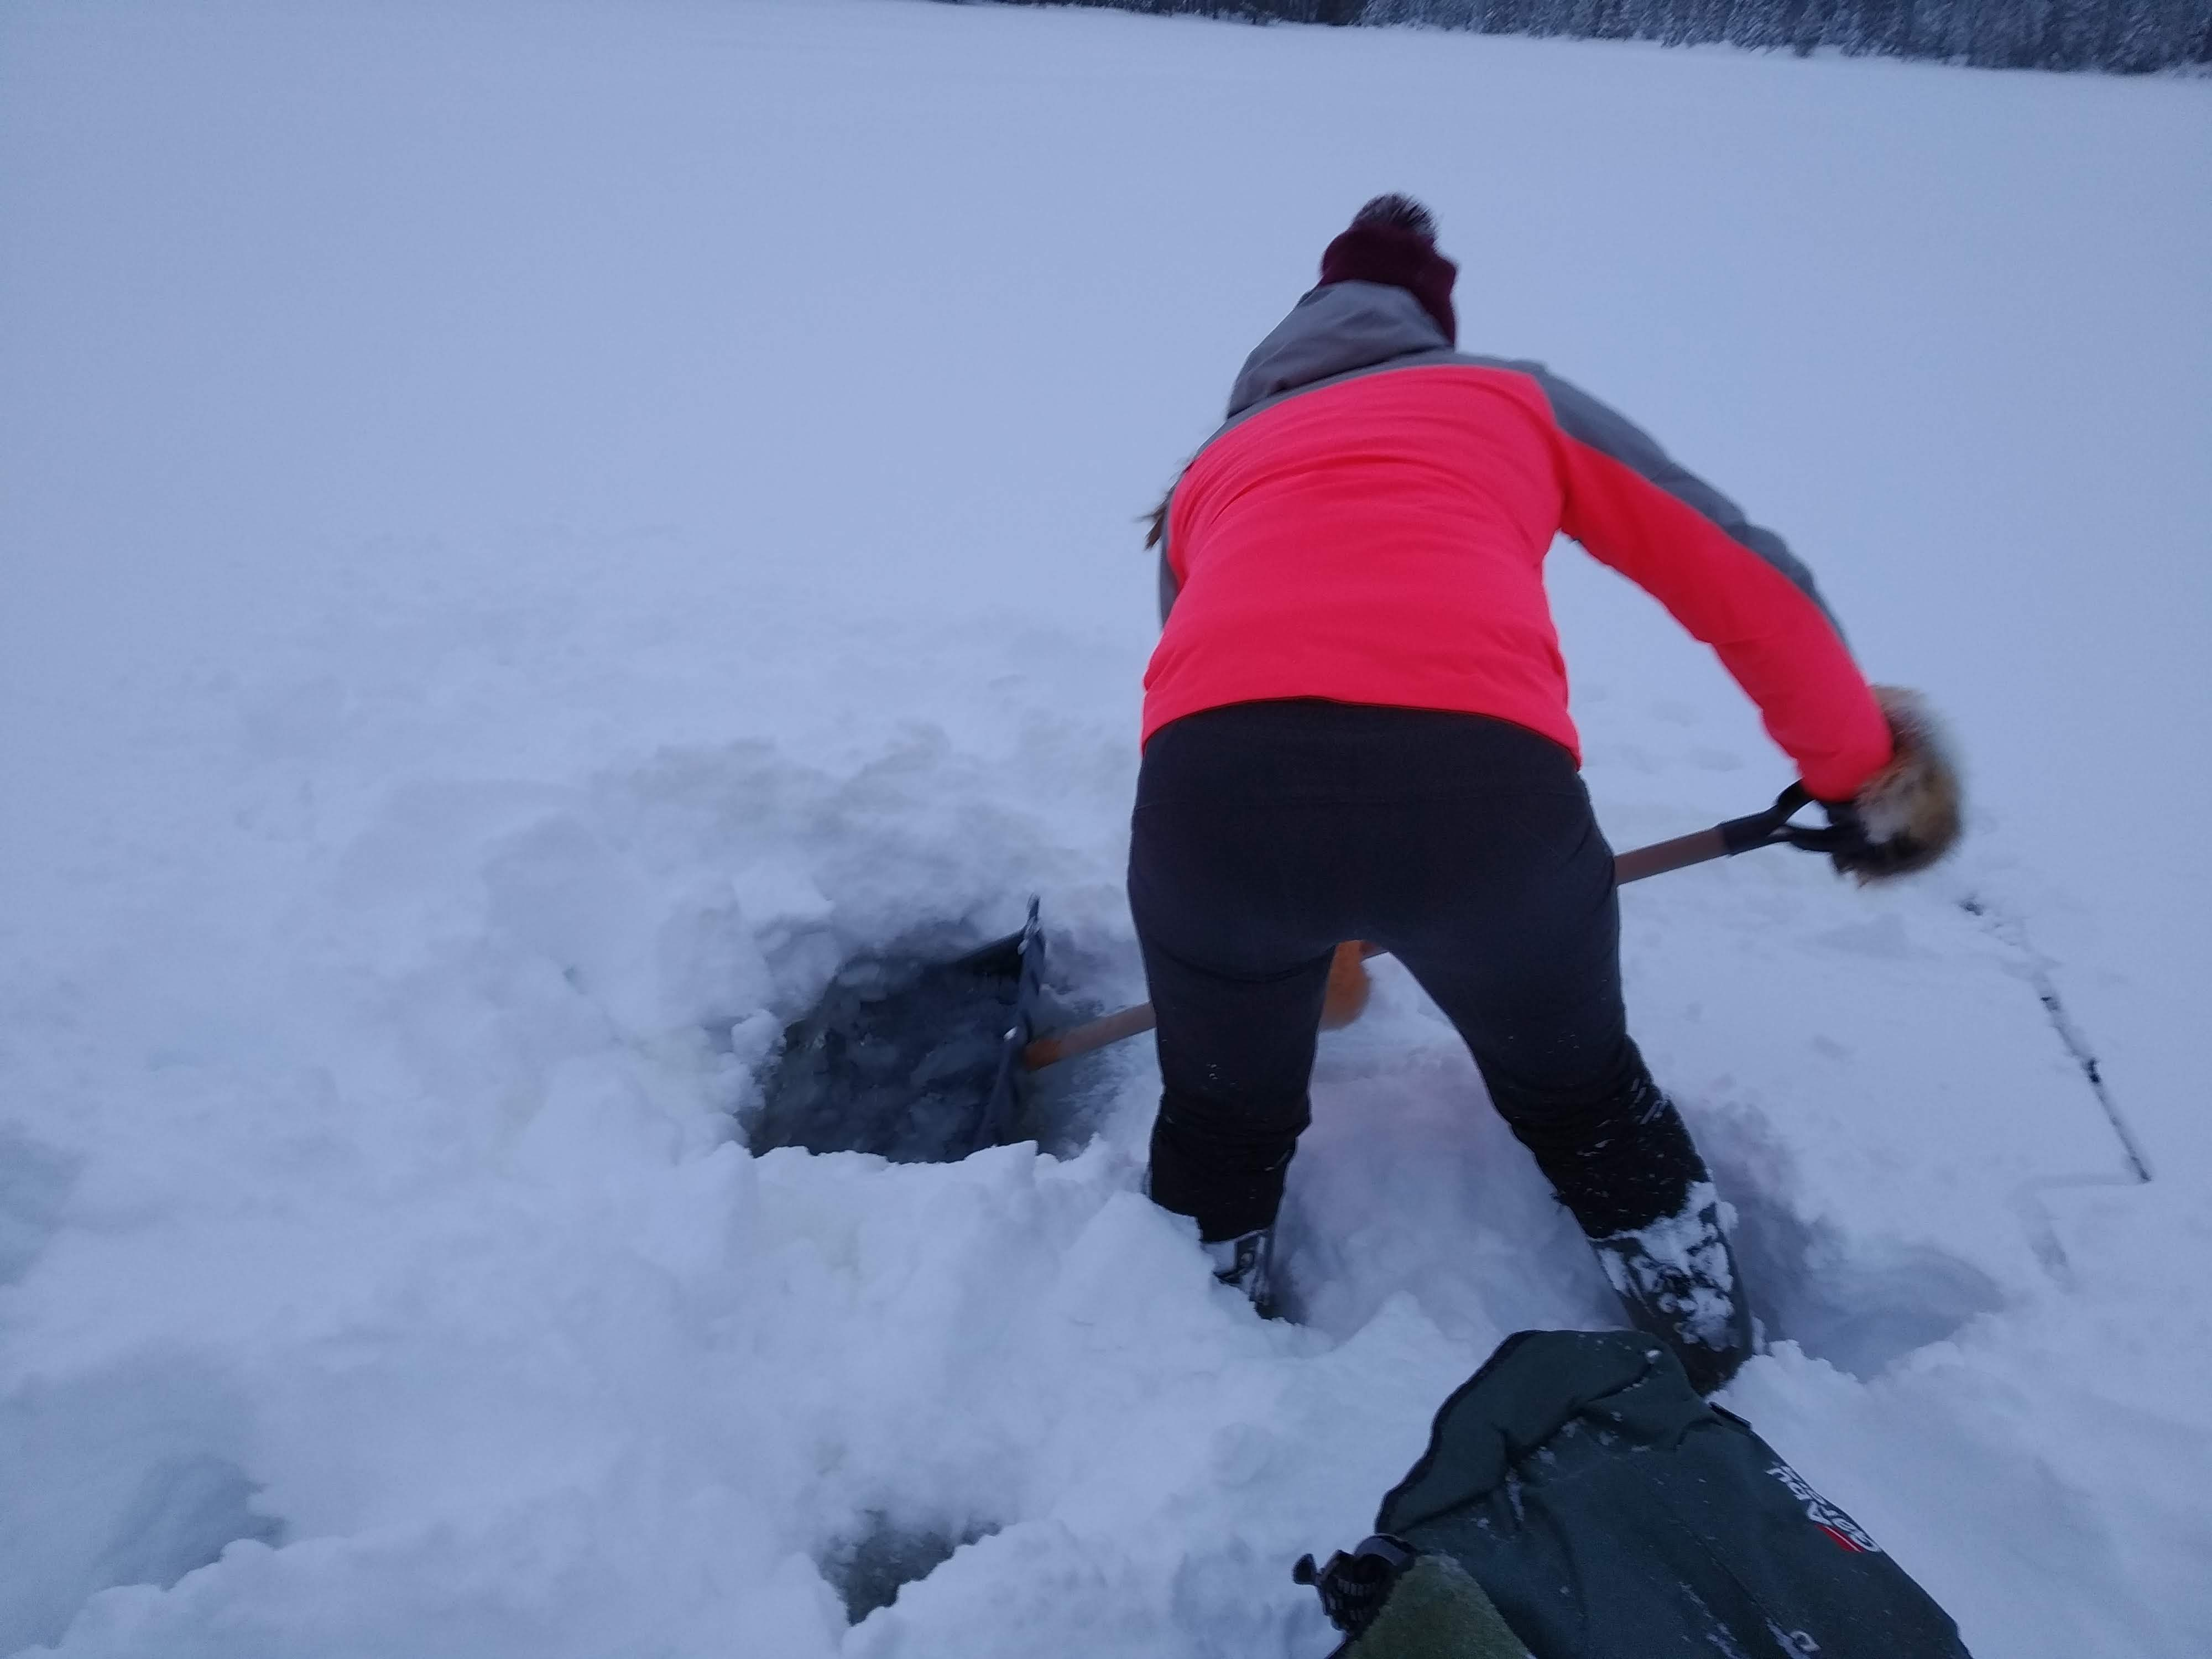 Venla digging the hole for ice fishing